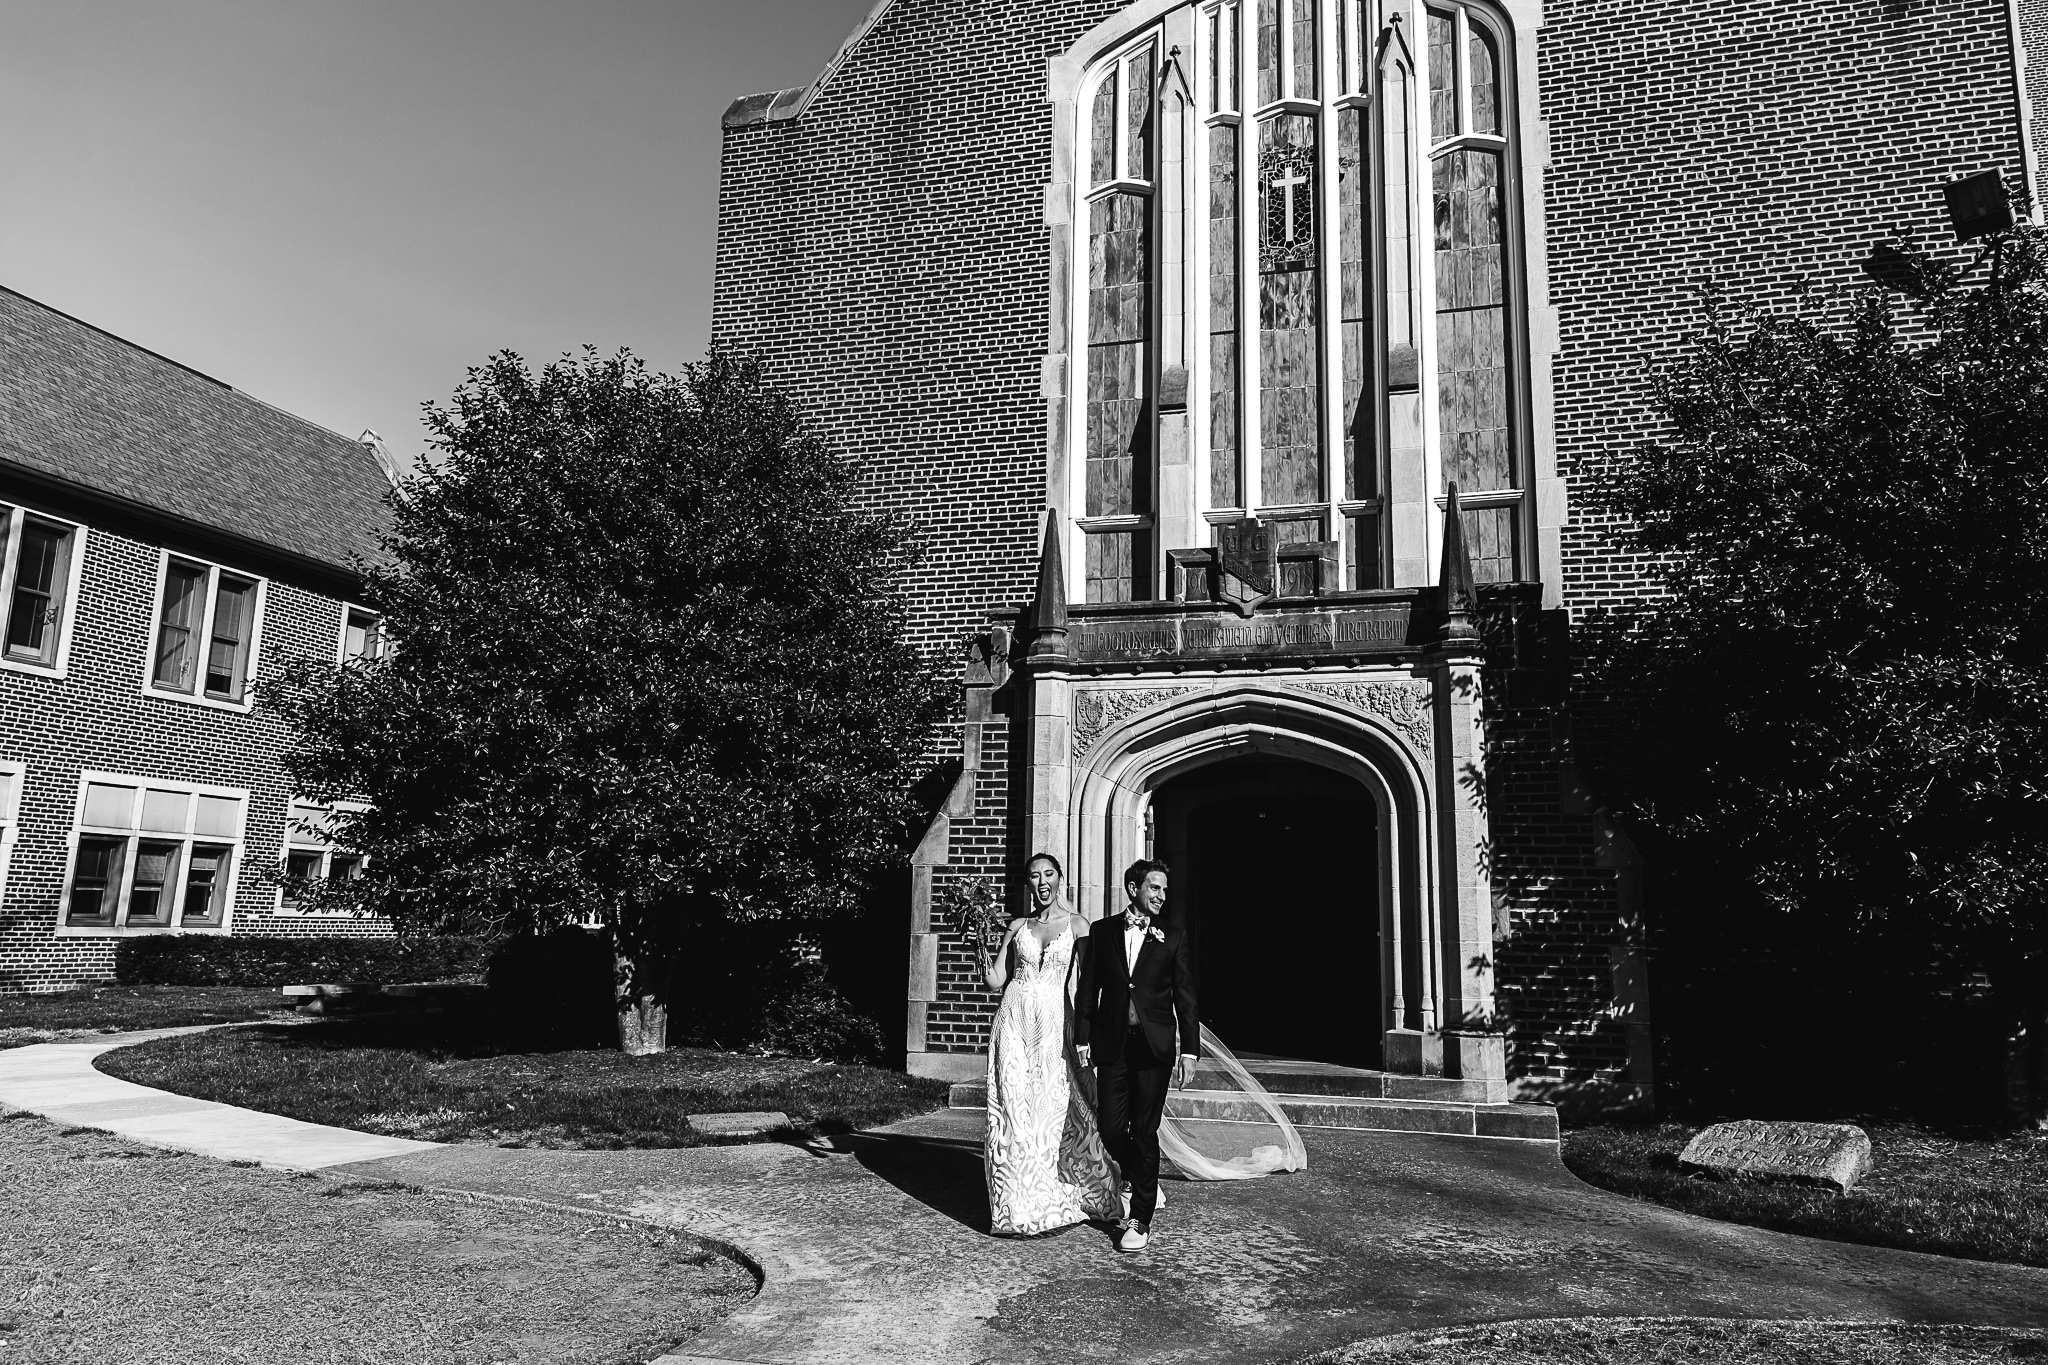 chattanooga-wedding-photographers-thewarmtharoundyou-waterhouse-pavilion-patten-chapel-wedding-sam-dusty (62 of 99).jpg